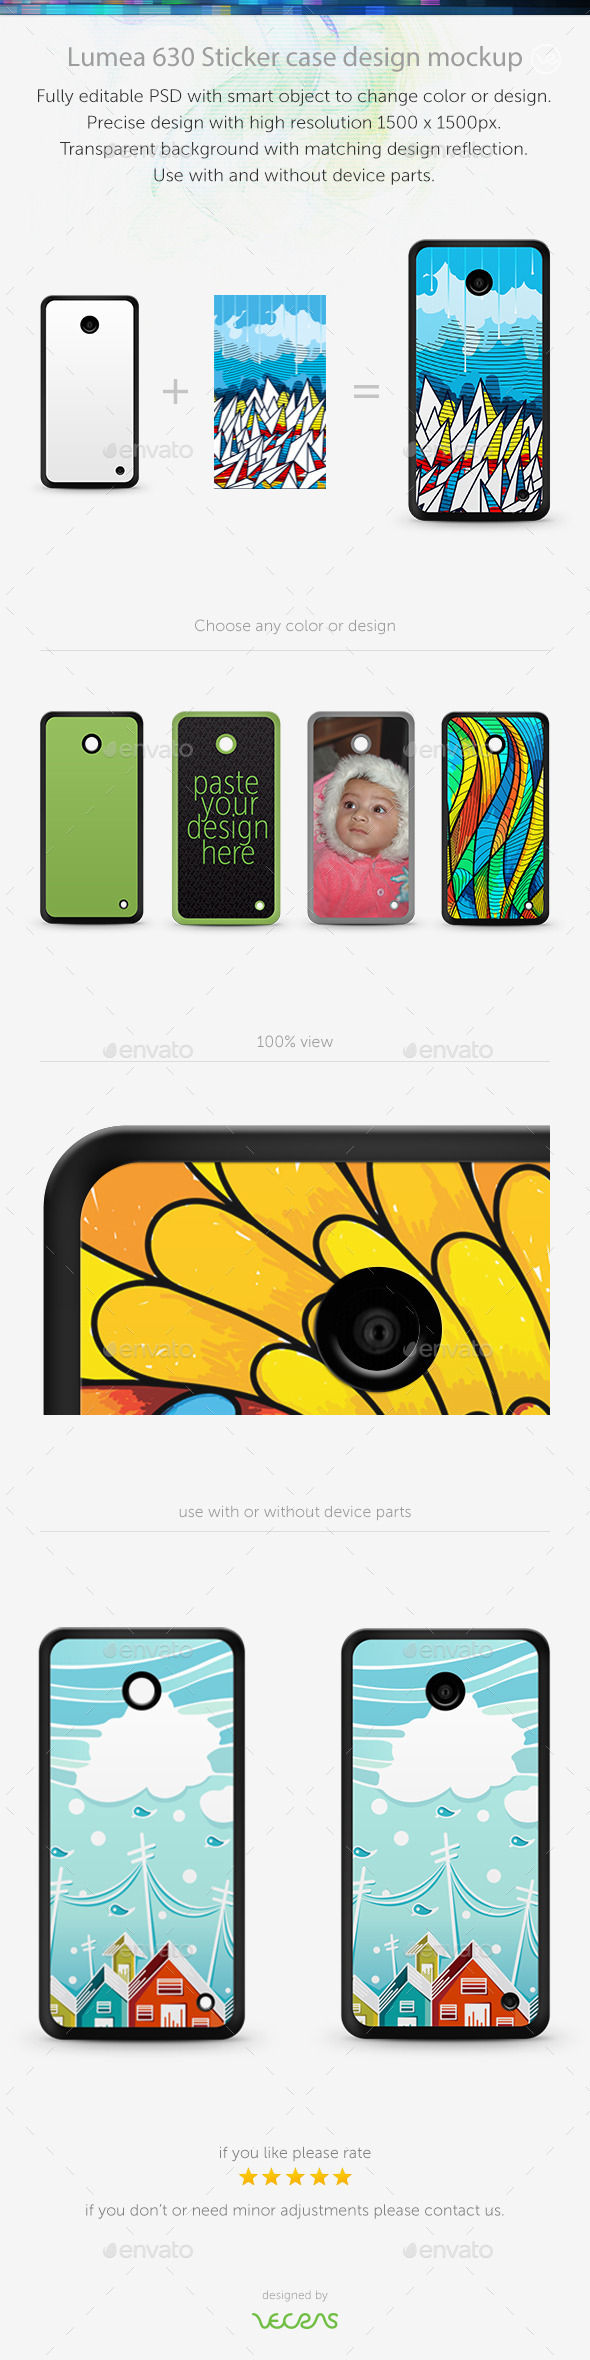 GraphicRiver Lumea 630 Sticker Case Design Mockup 10832564